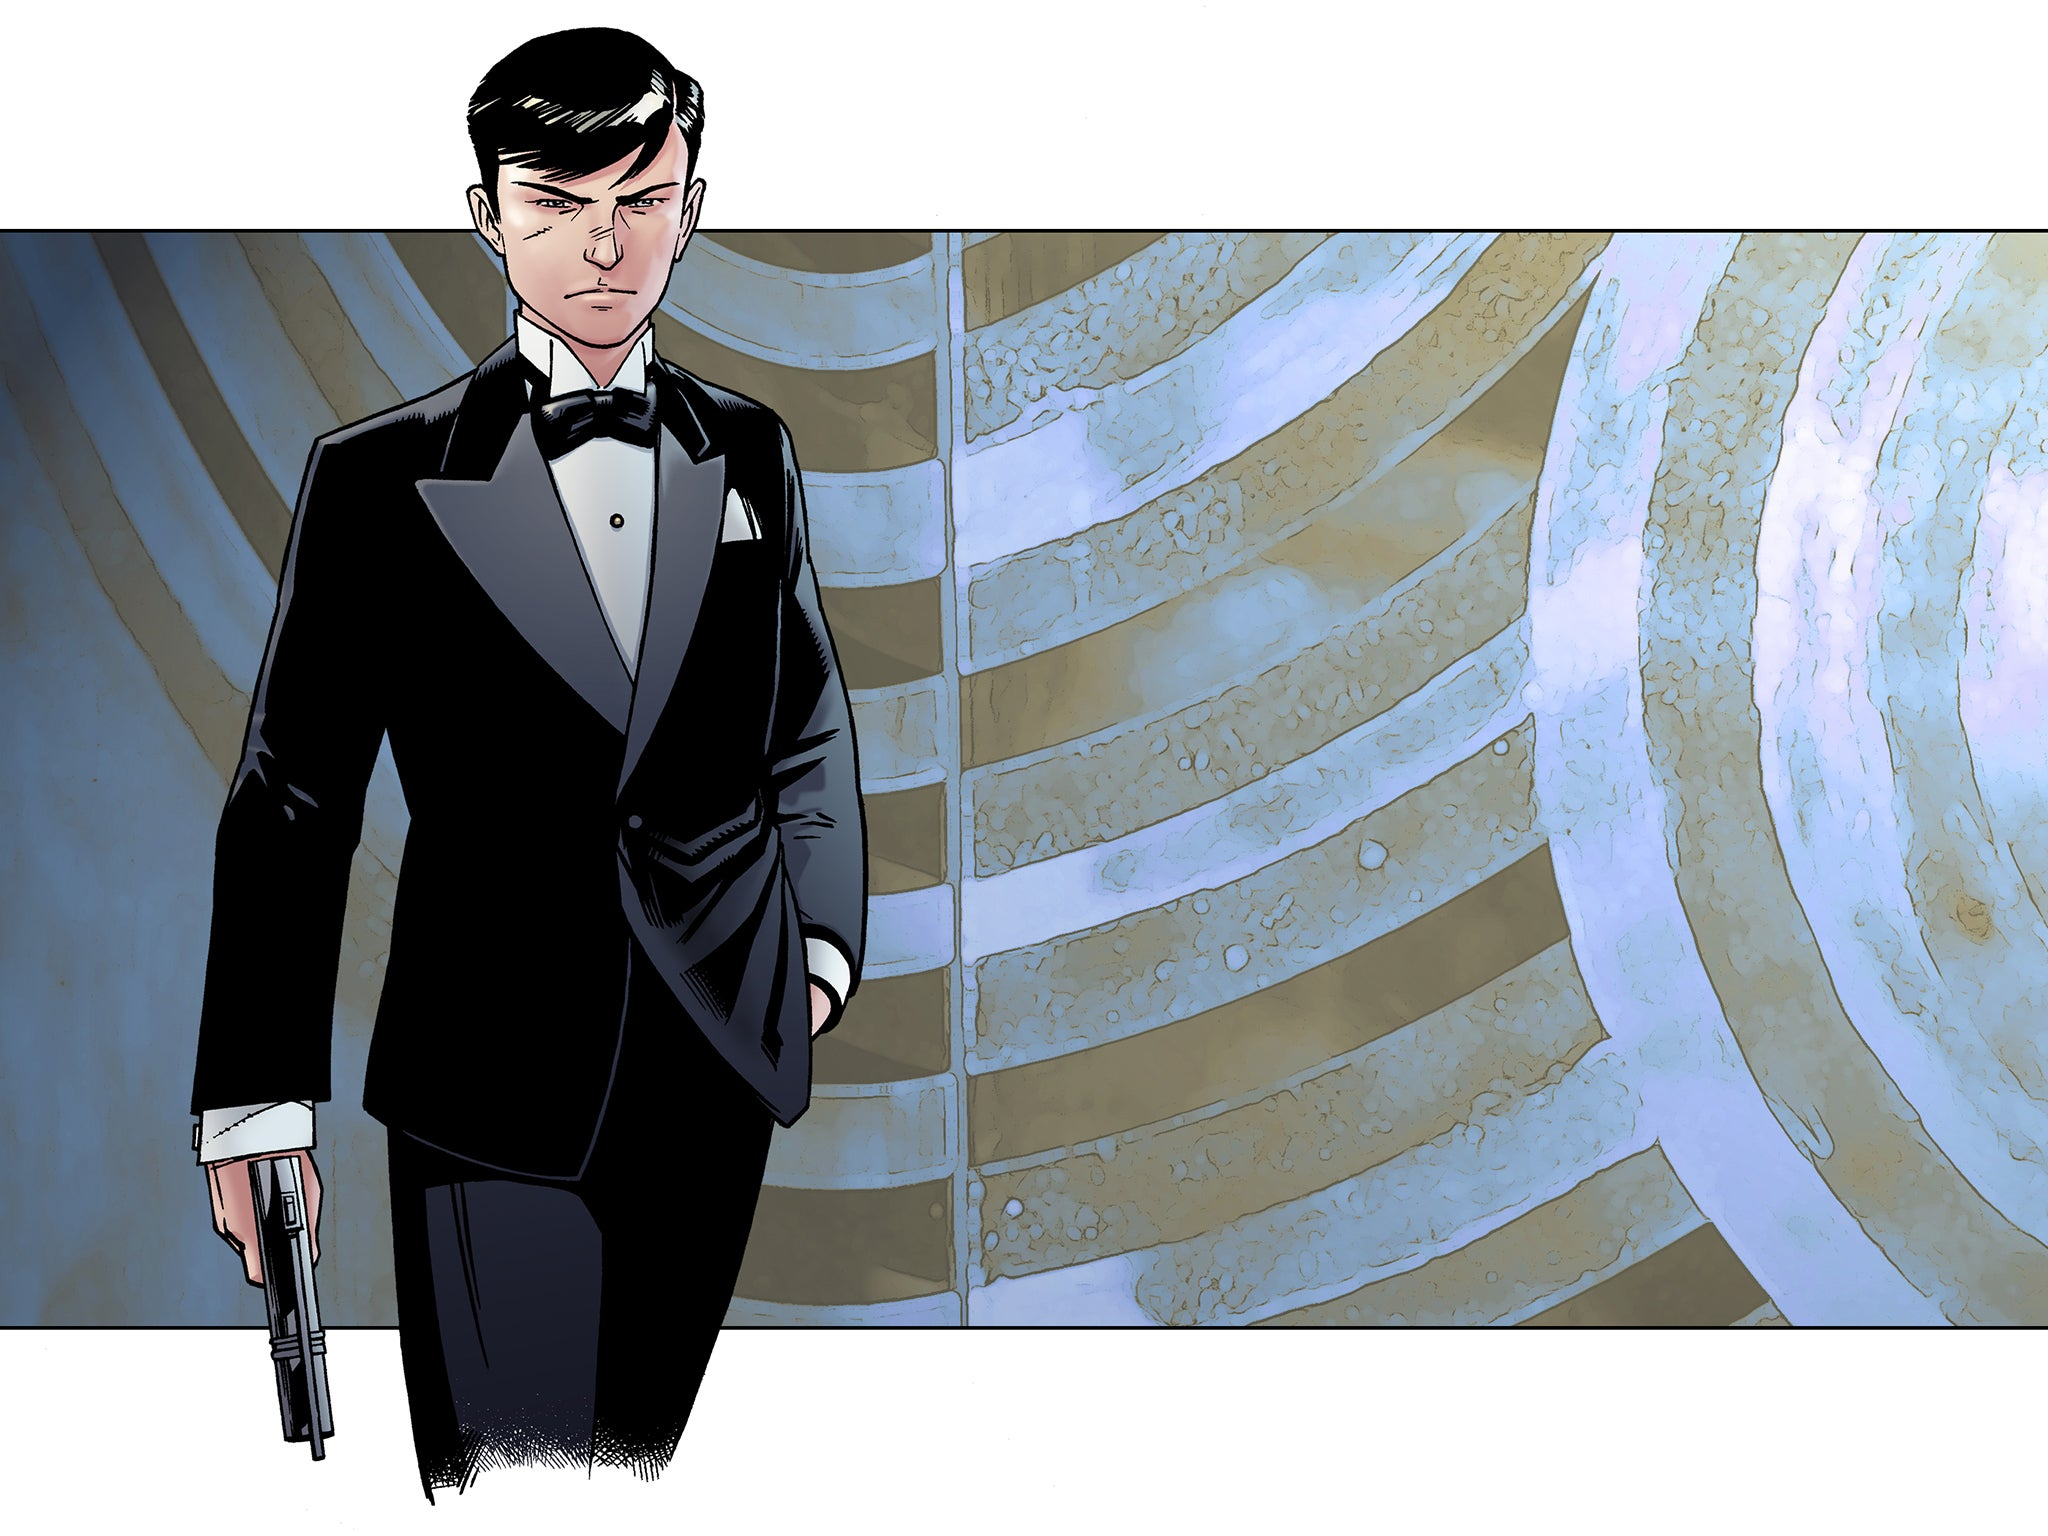 James Bond gets first new comic book series in 20 years based on the 'brutal, damaged original'